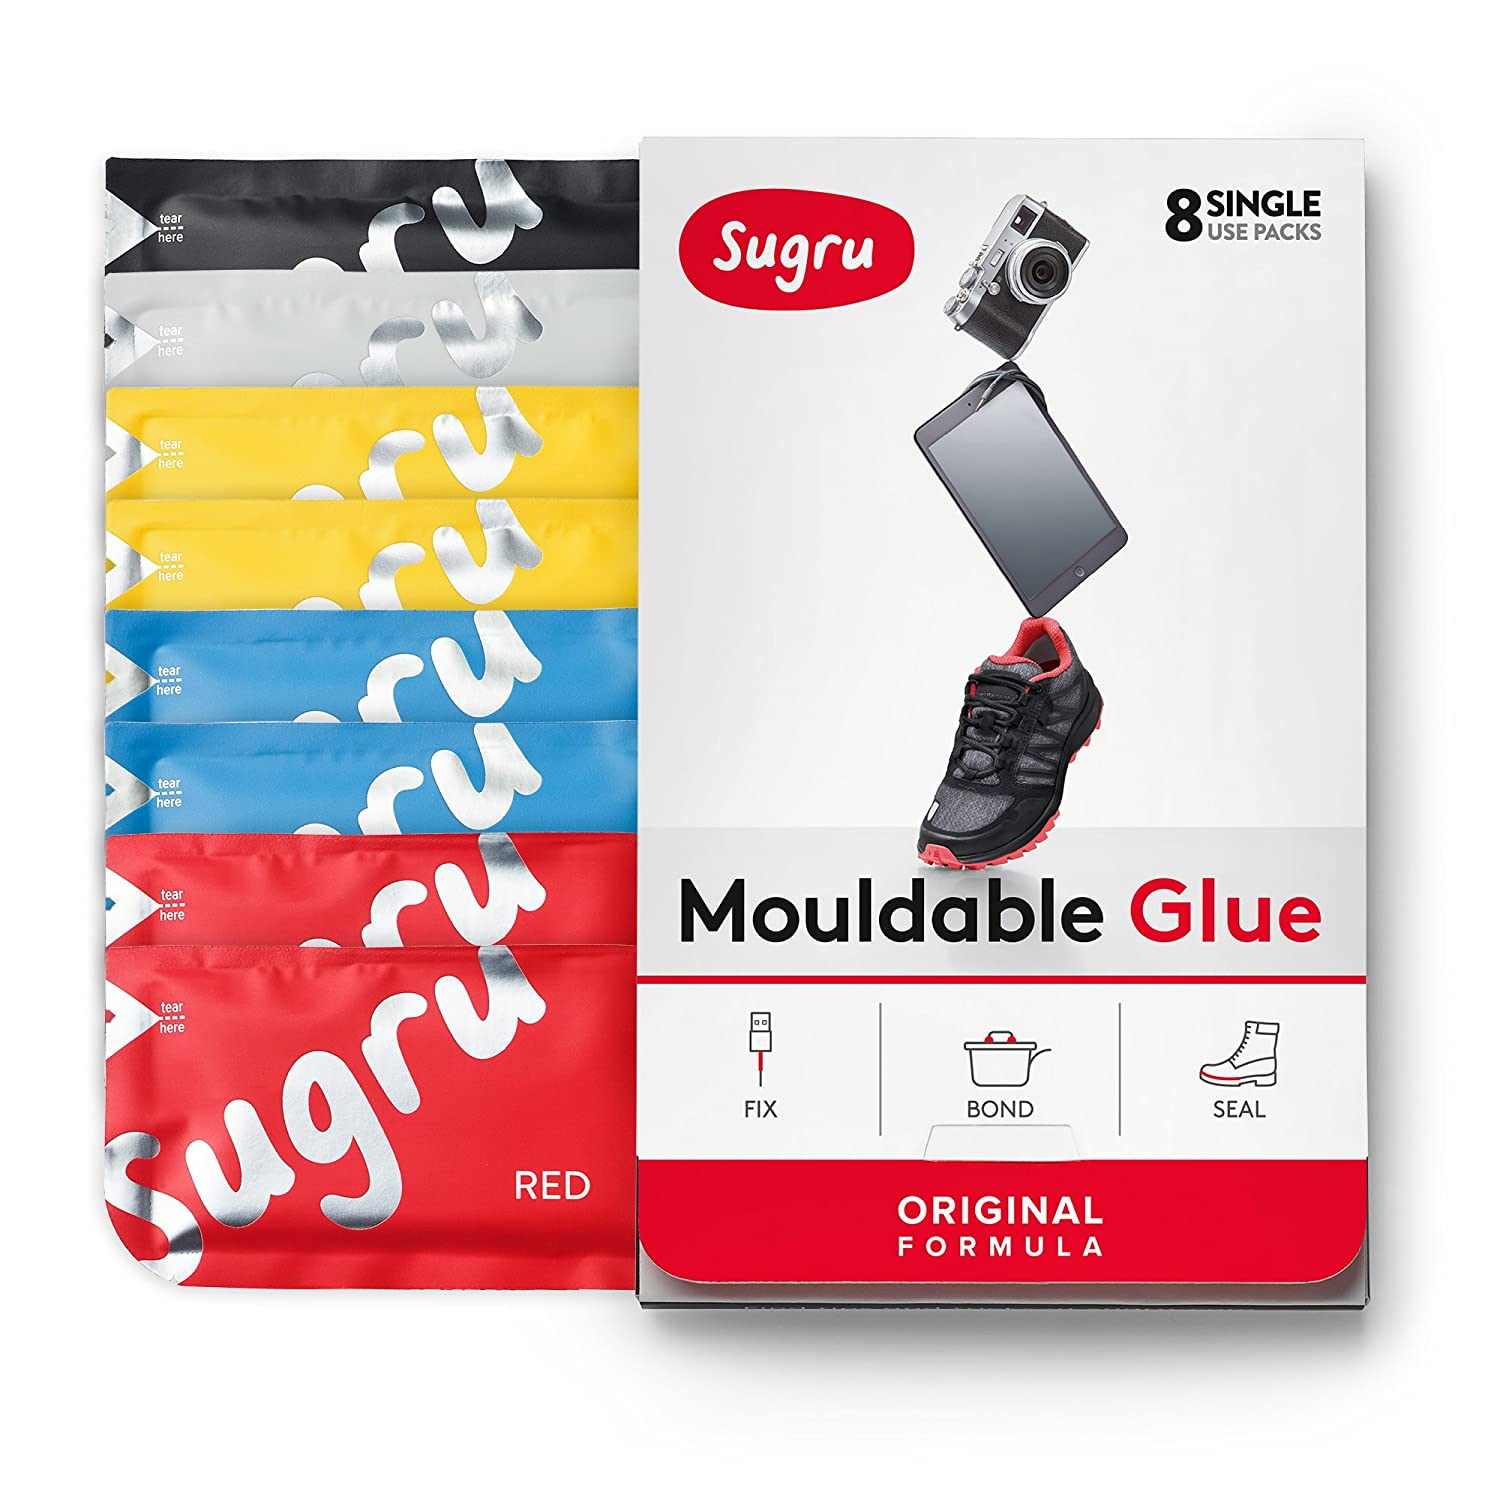 A Glue That Will Fix Everything - Sugru Moldable Glue .